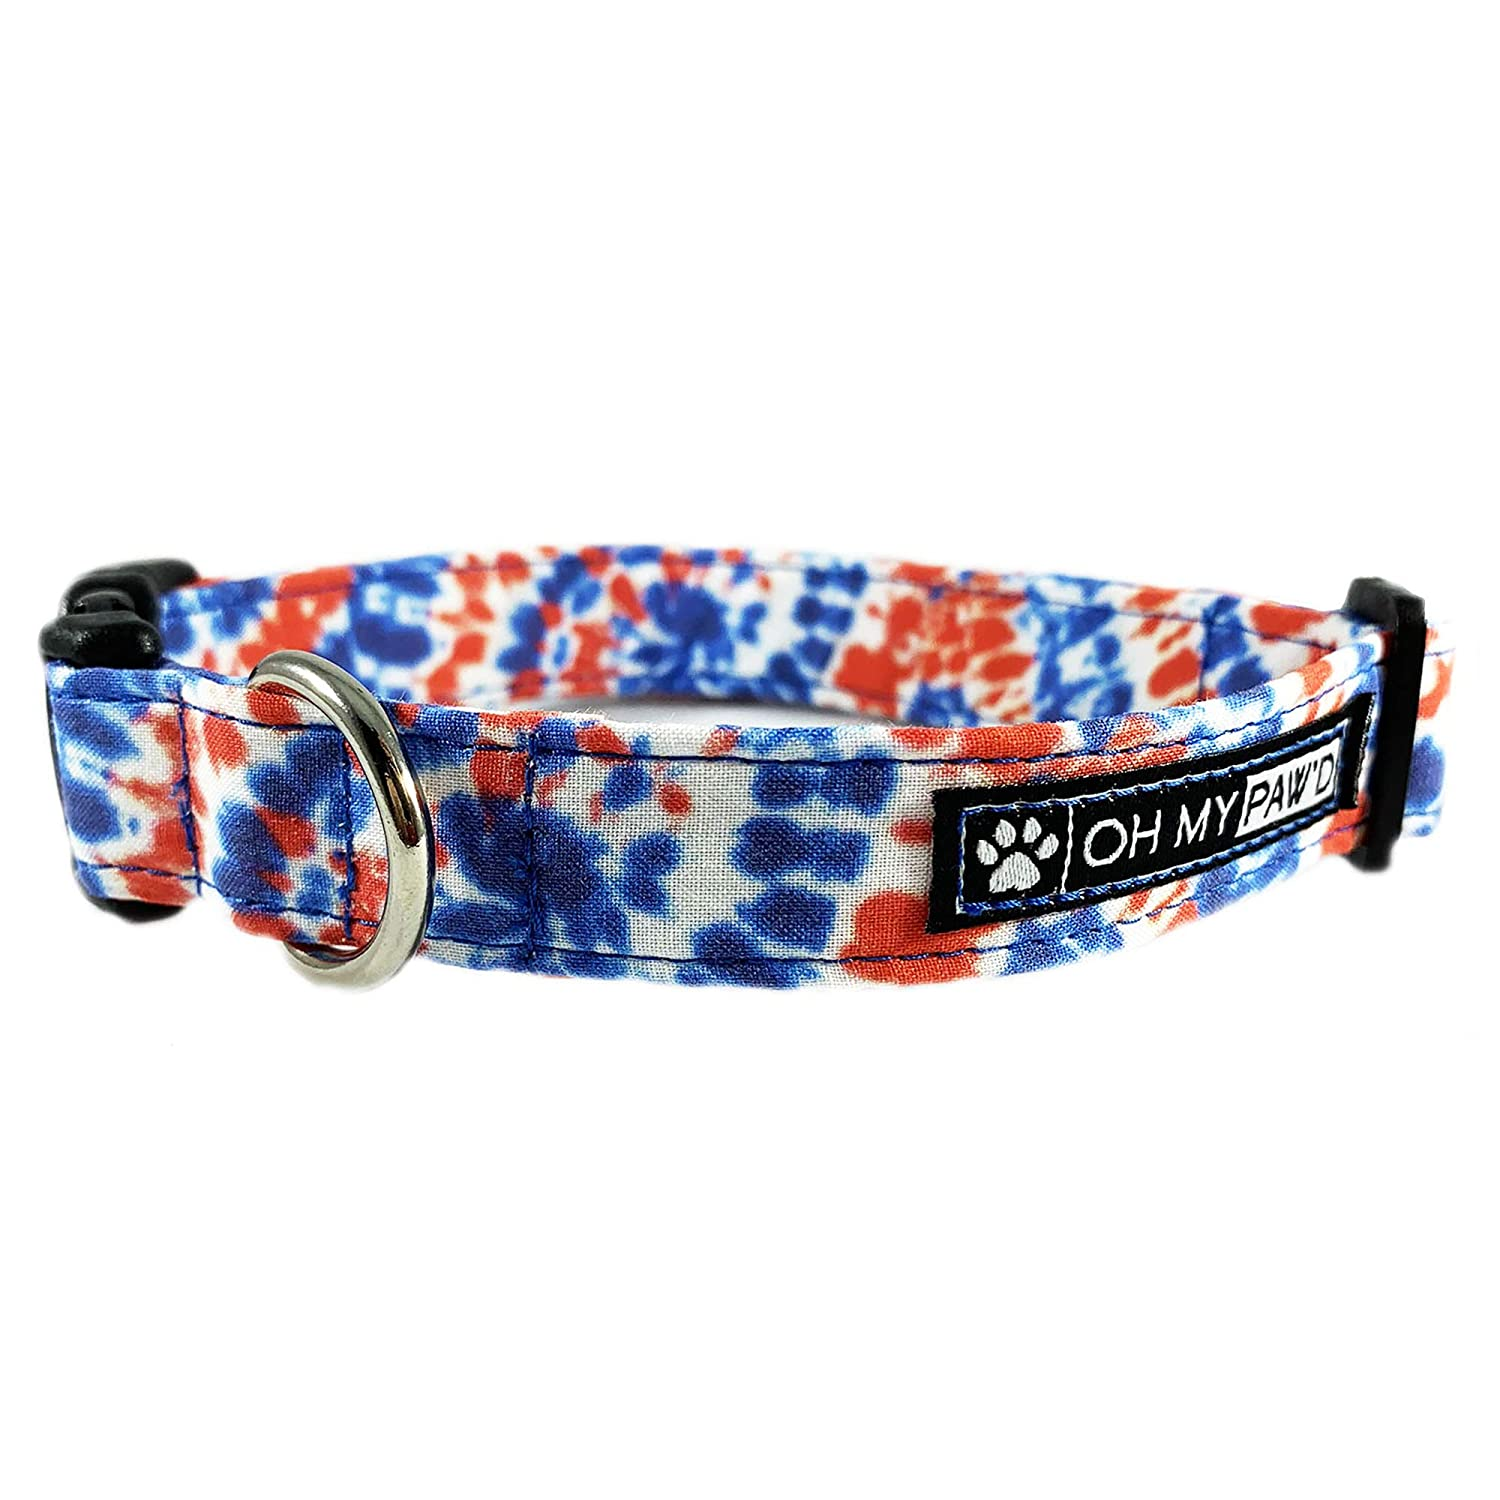 Patriotic Tye Dye Dog or Cat Collar for Pets Size Extra Small 5//8 Inch Wide and 8-12 Inches Long by Oh My Pawd